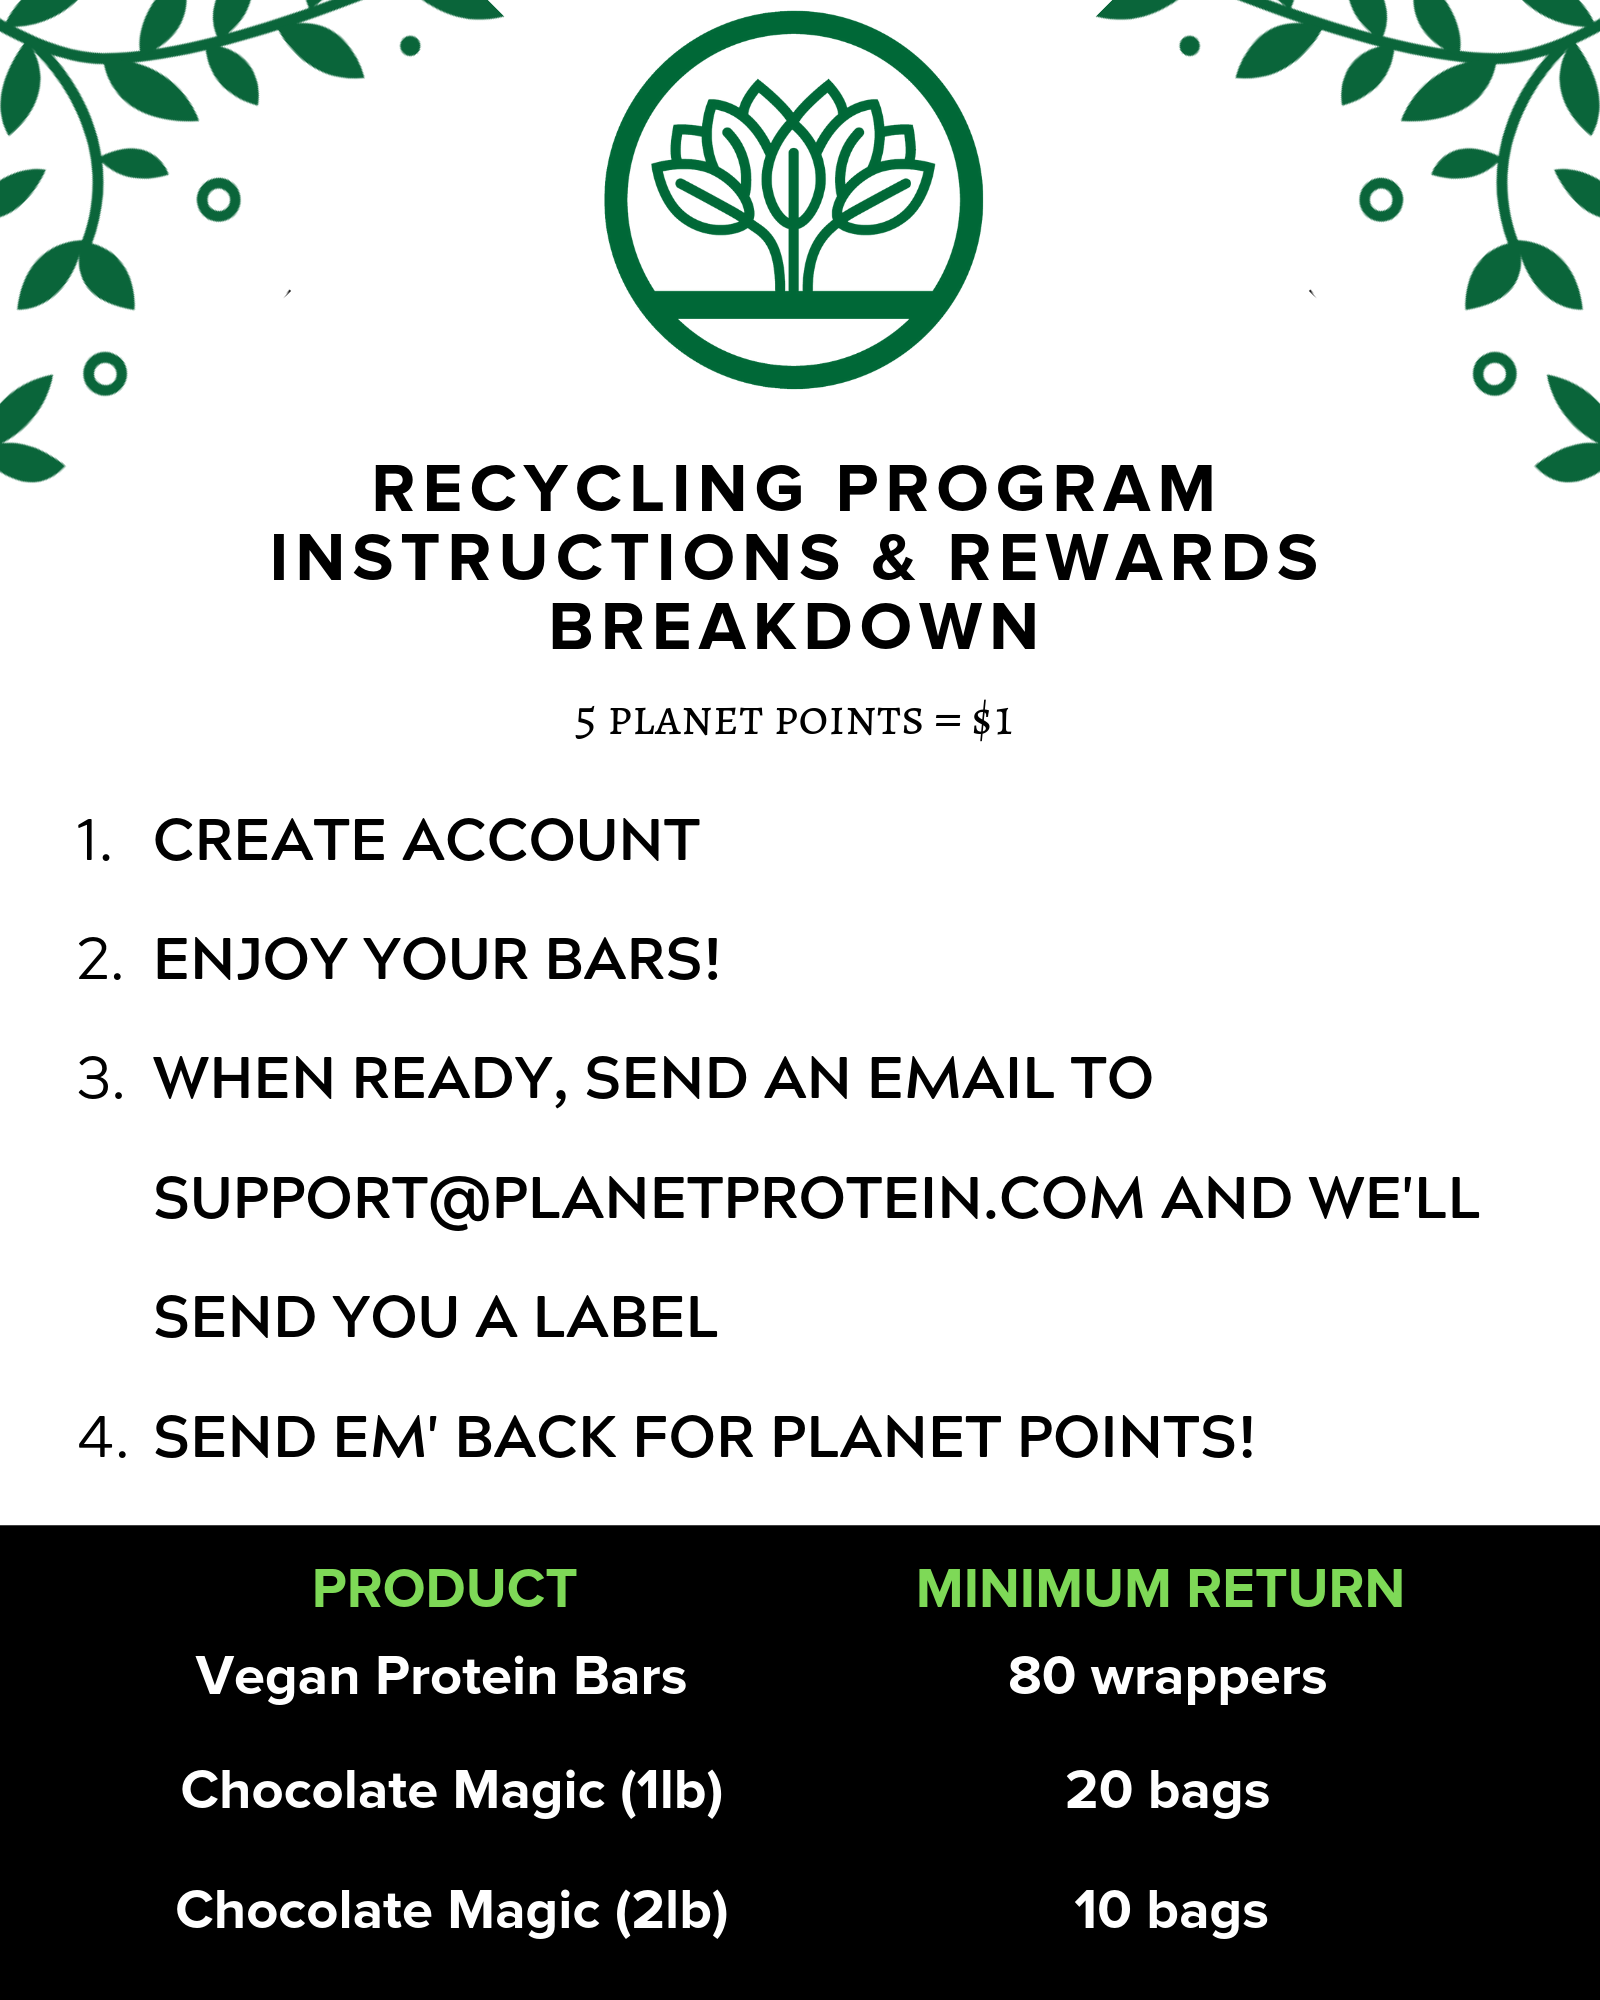 Planet Protein recycling program terms